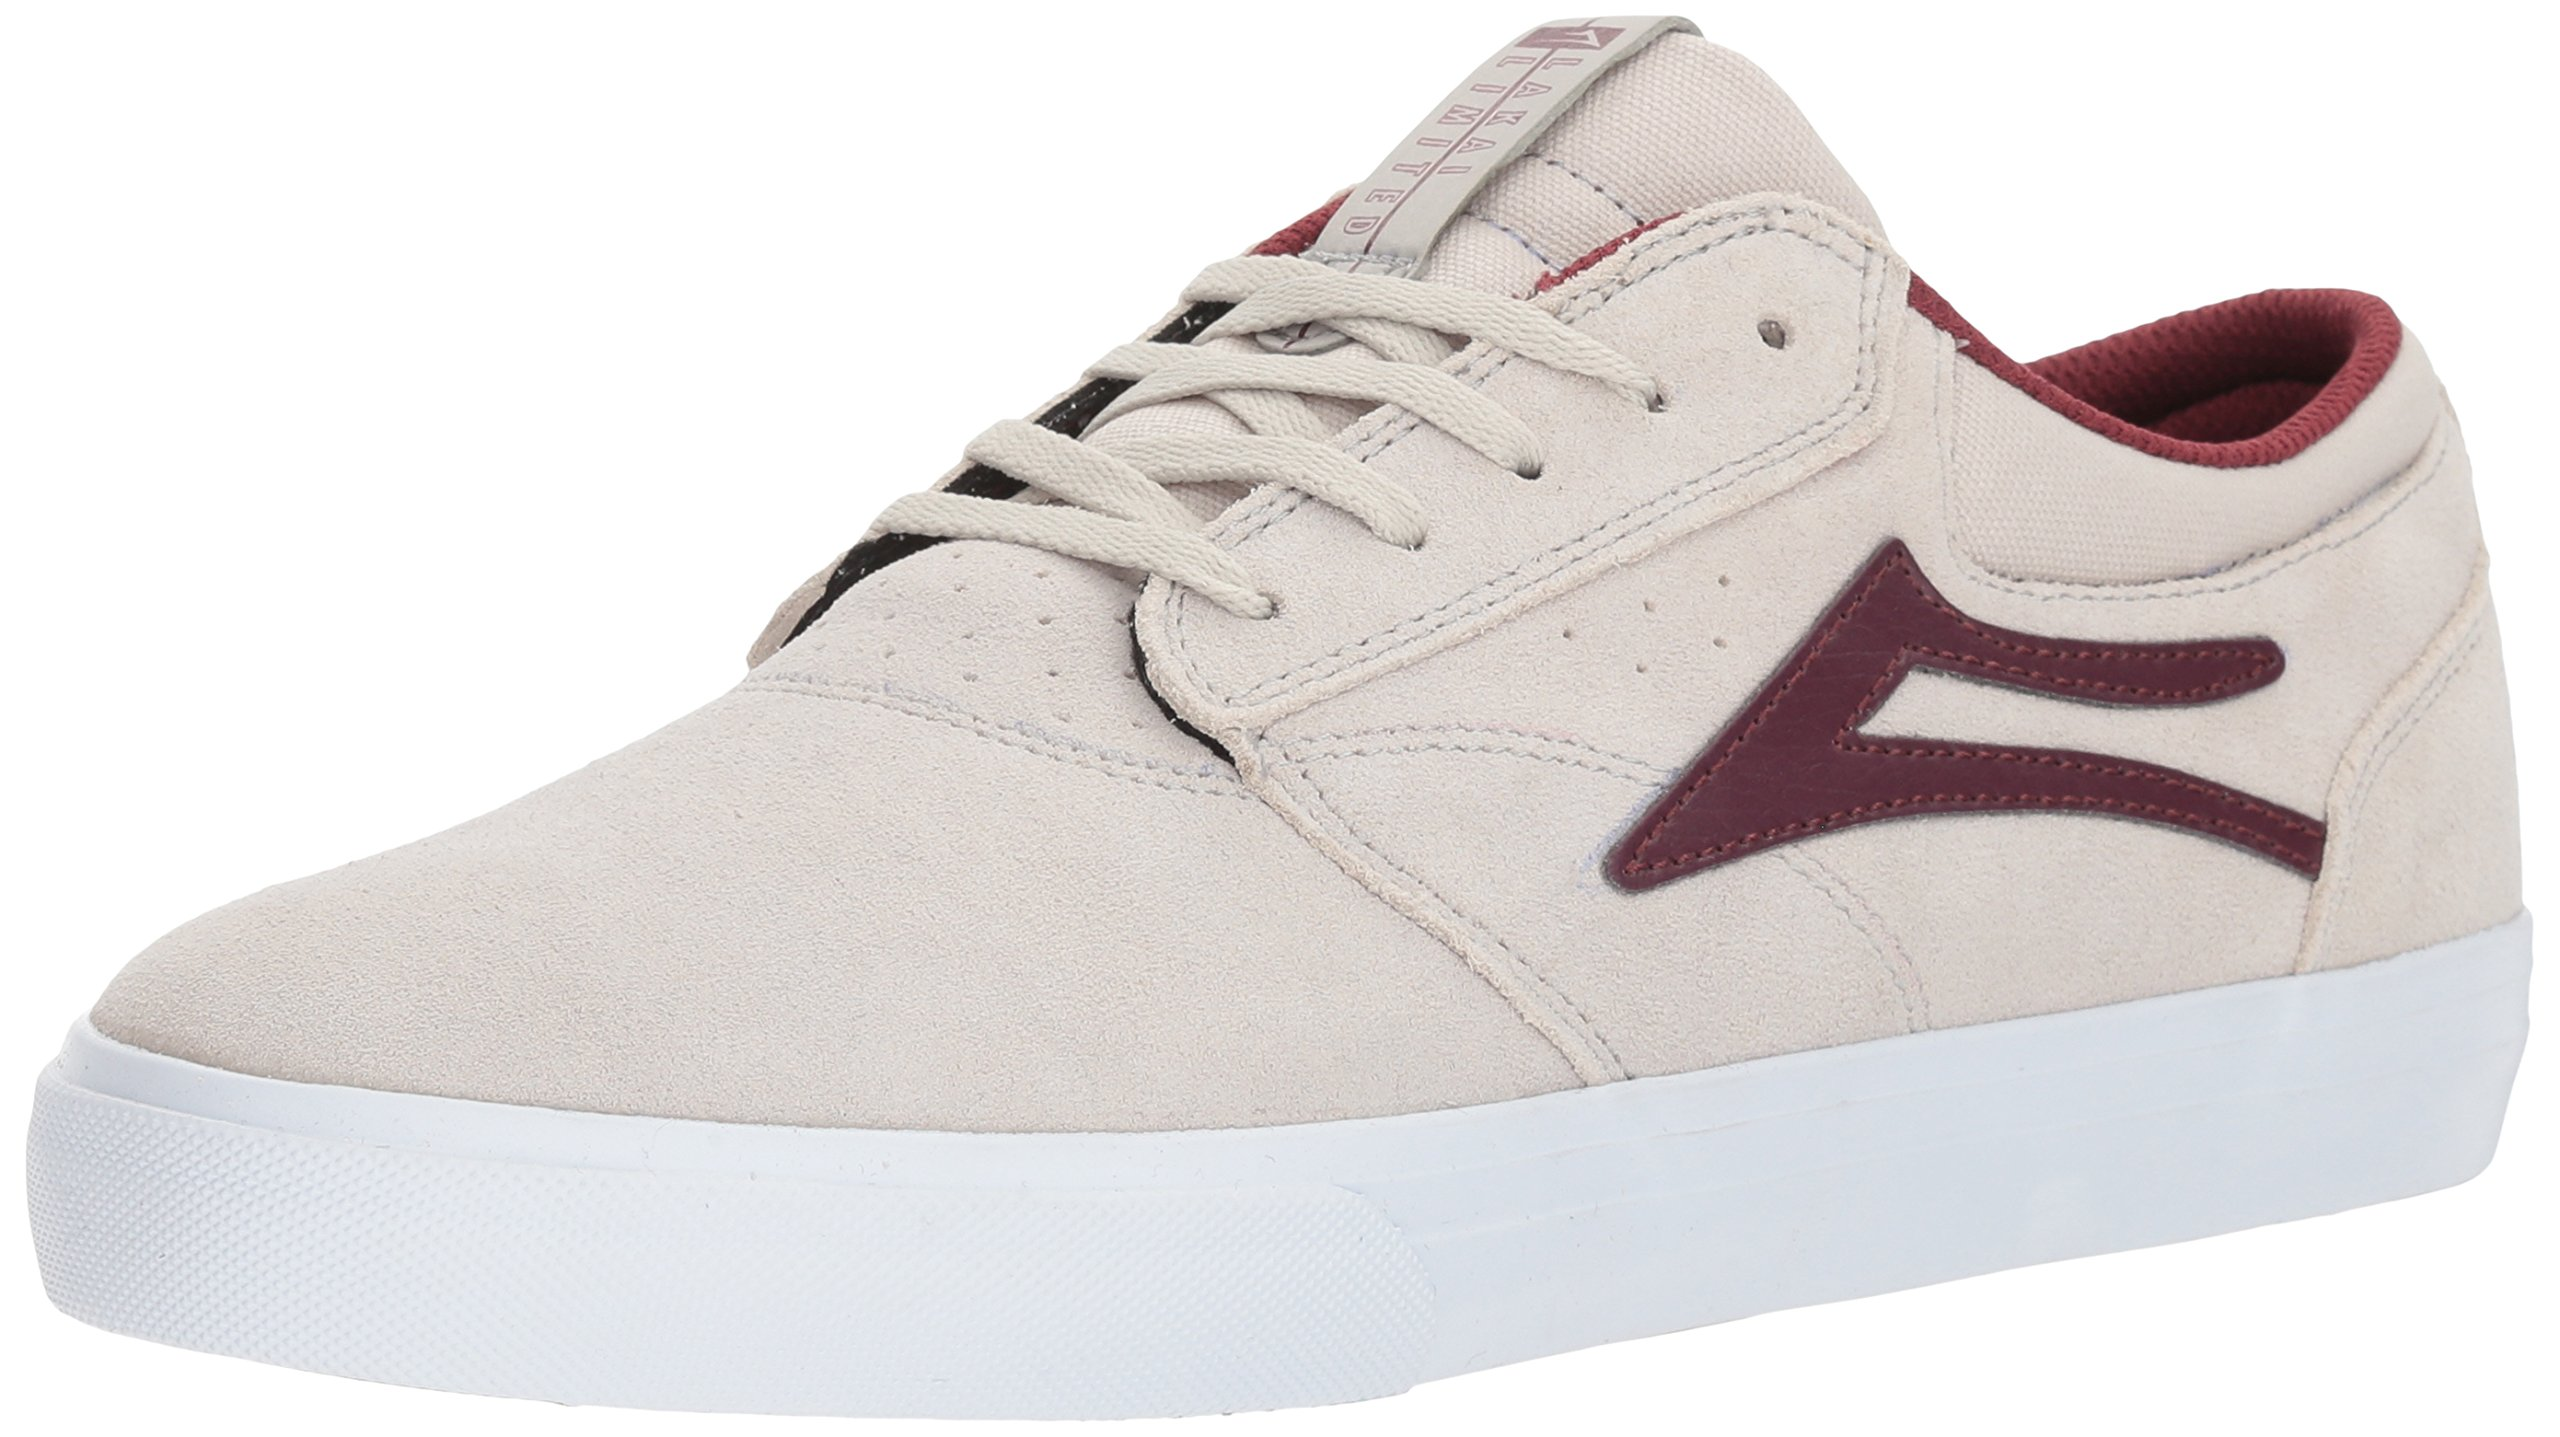 Lakai Griffin, White/Burgundy Suede, 10.5 Medium US